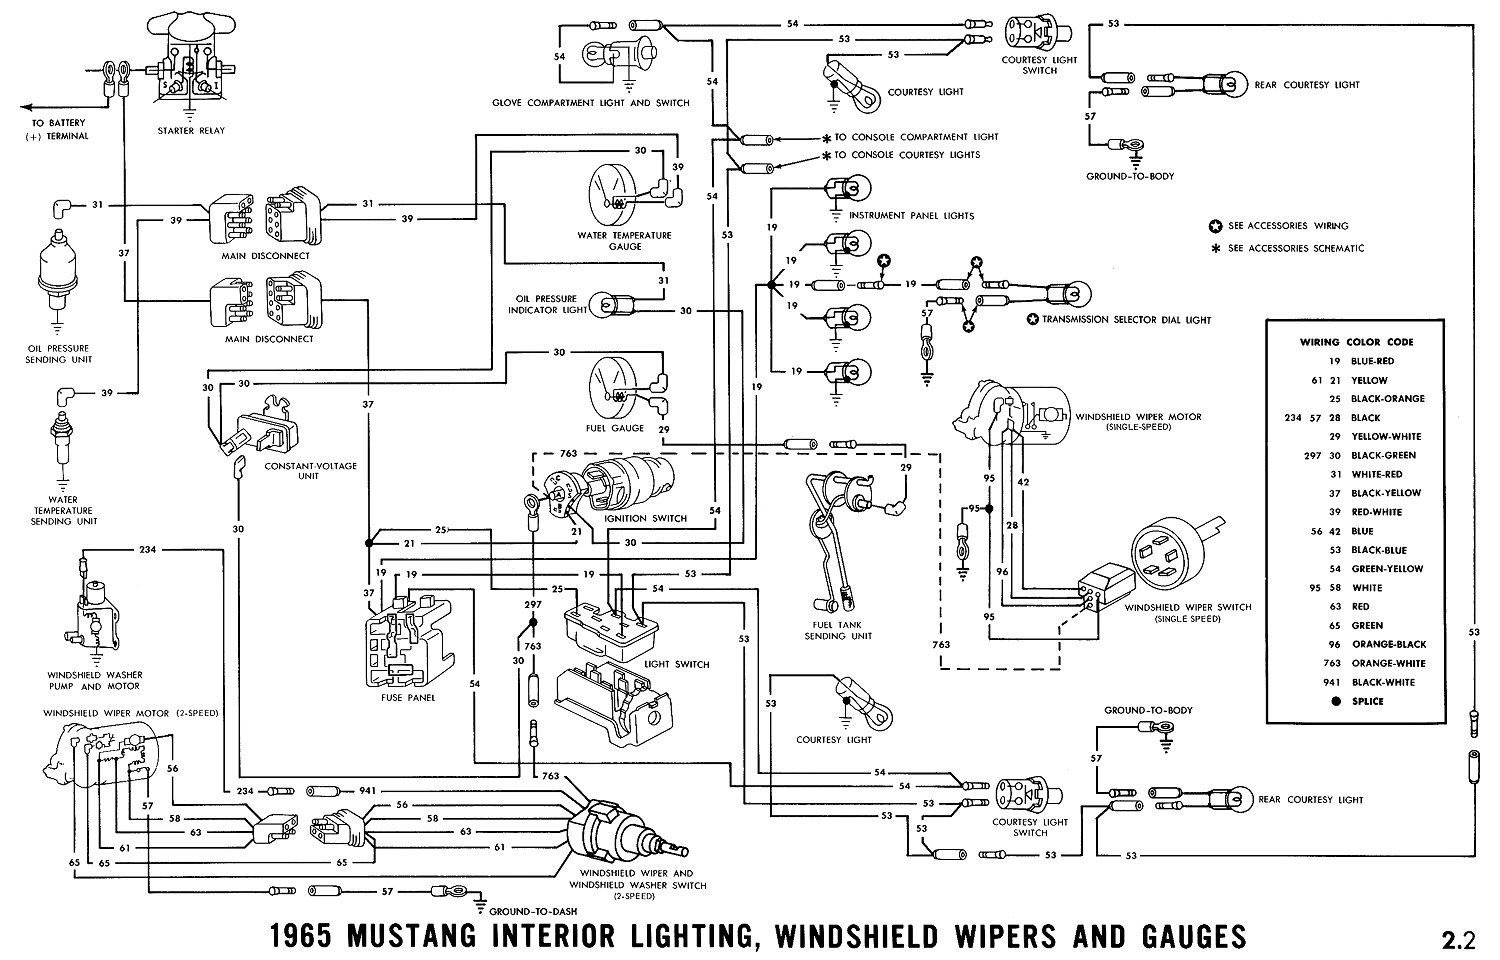 1965g 1965 mustang wiring diagrams average joe restoration 1966 ford mustang wiring diagram at crackthecode.co